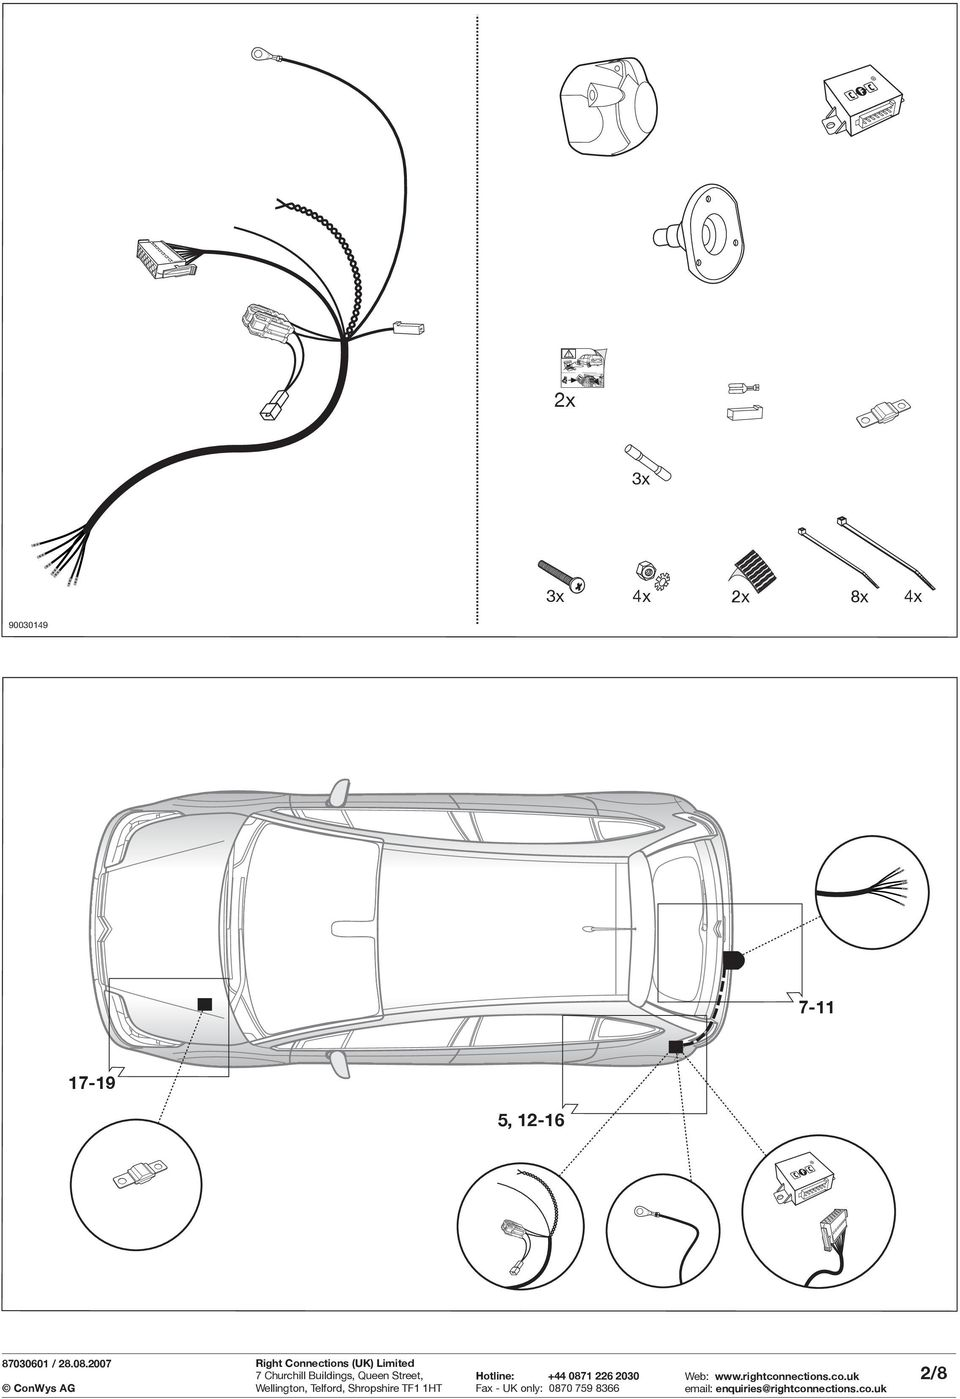 Fitting Instructions Part No Rc Citroen Important Grand C4 Picasso Wiring Diagrams 90030149 7 11